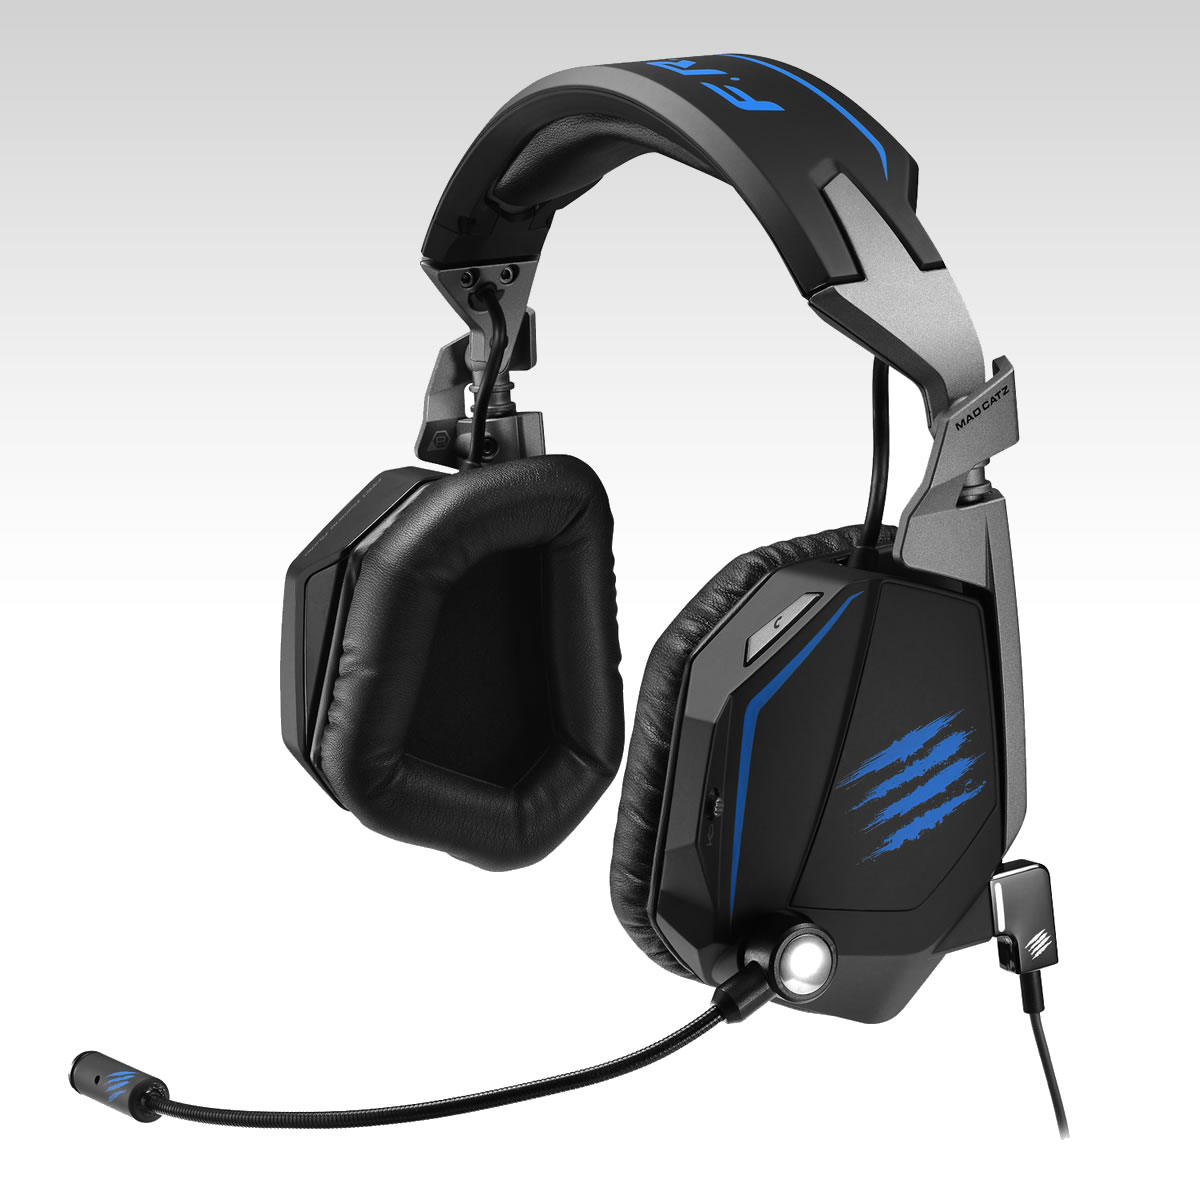 MAD CATZ FREQ TE Tournament Edition STEREO GAMING HEADSET - MATTE BLACK (PC, MAC, MOBILE)